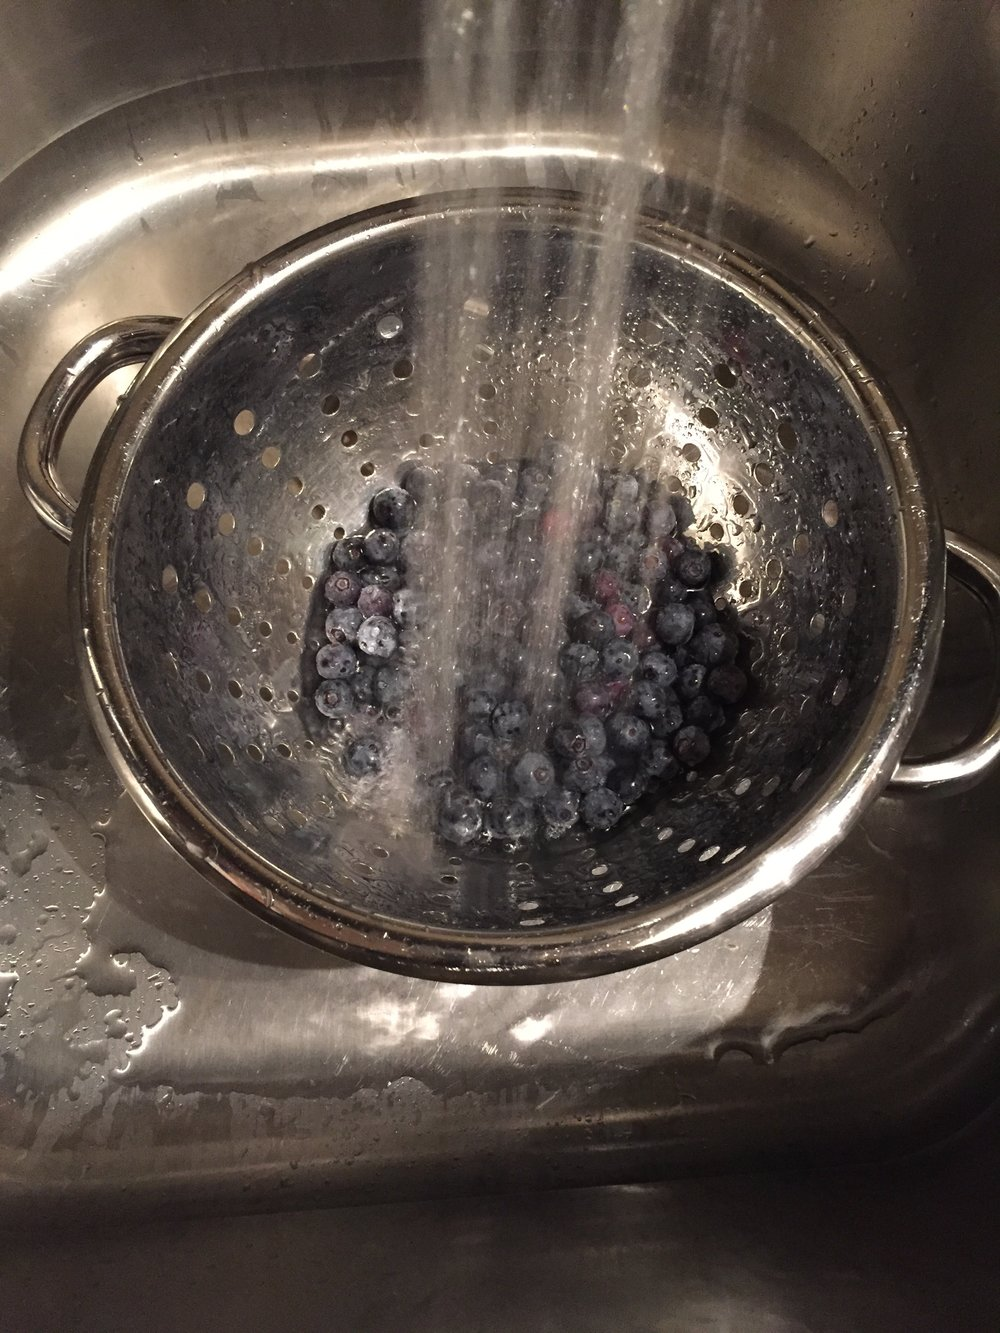 RINSE BLUEBERRIES